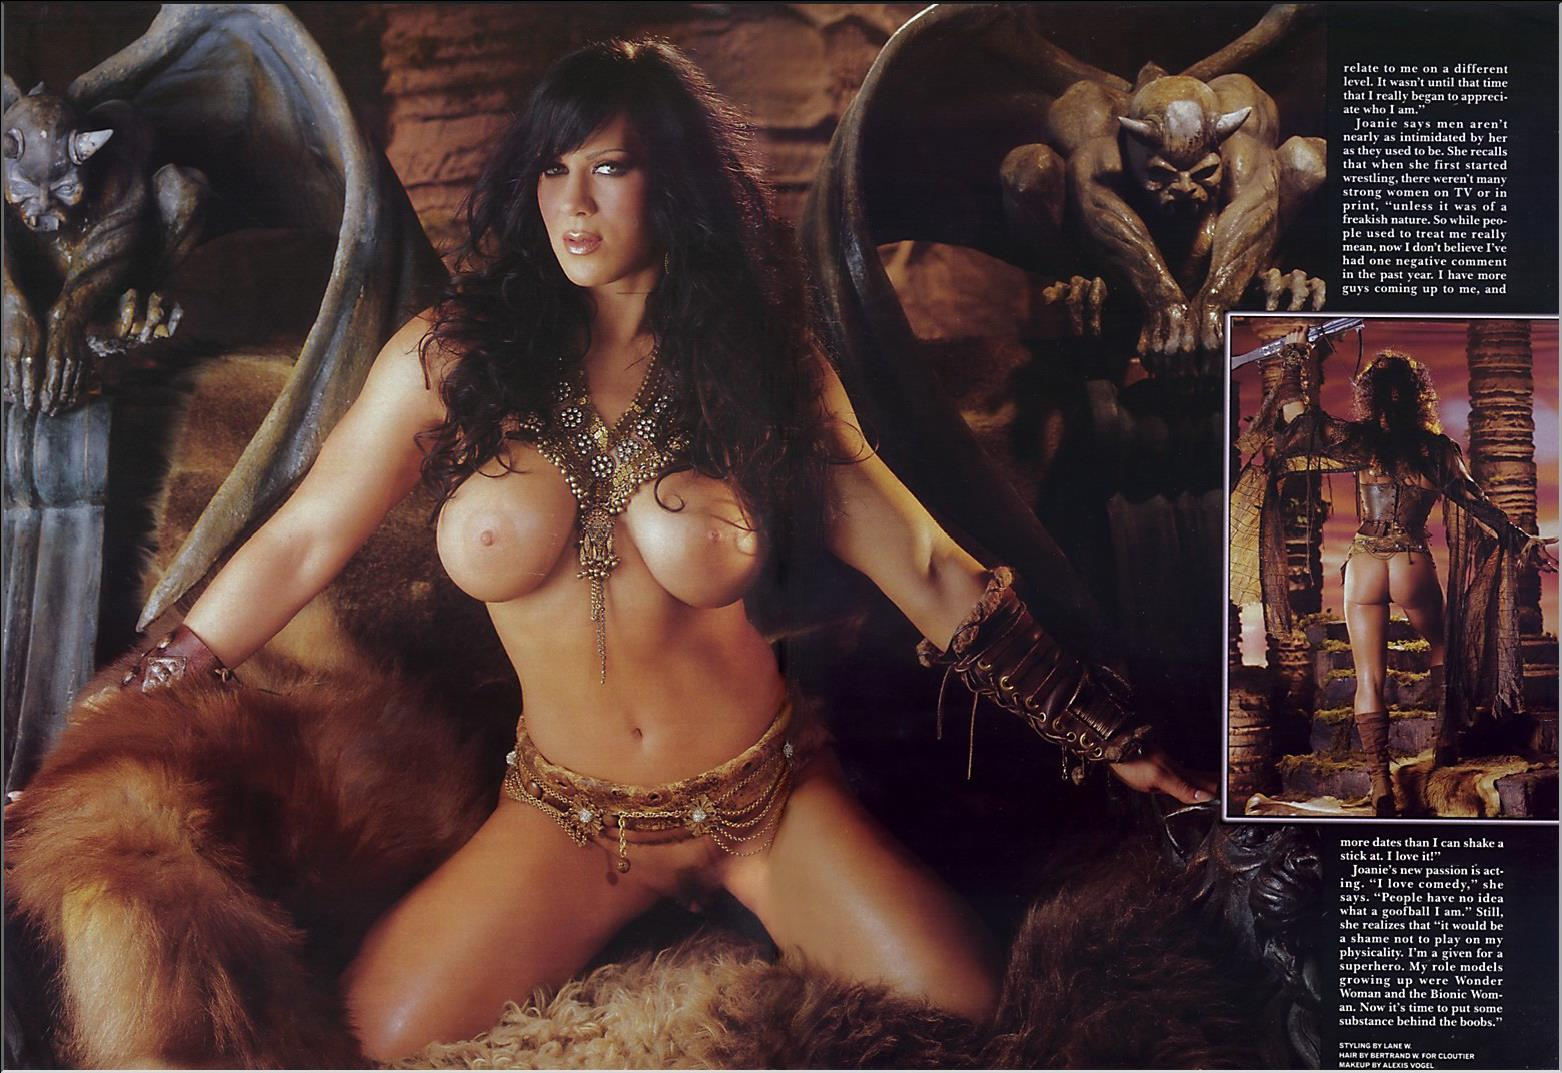 Warrior xena naked sex photos